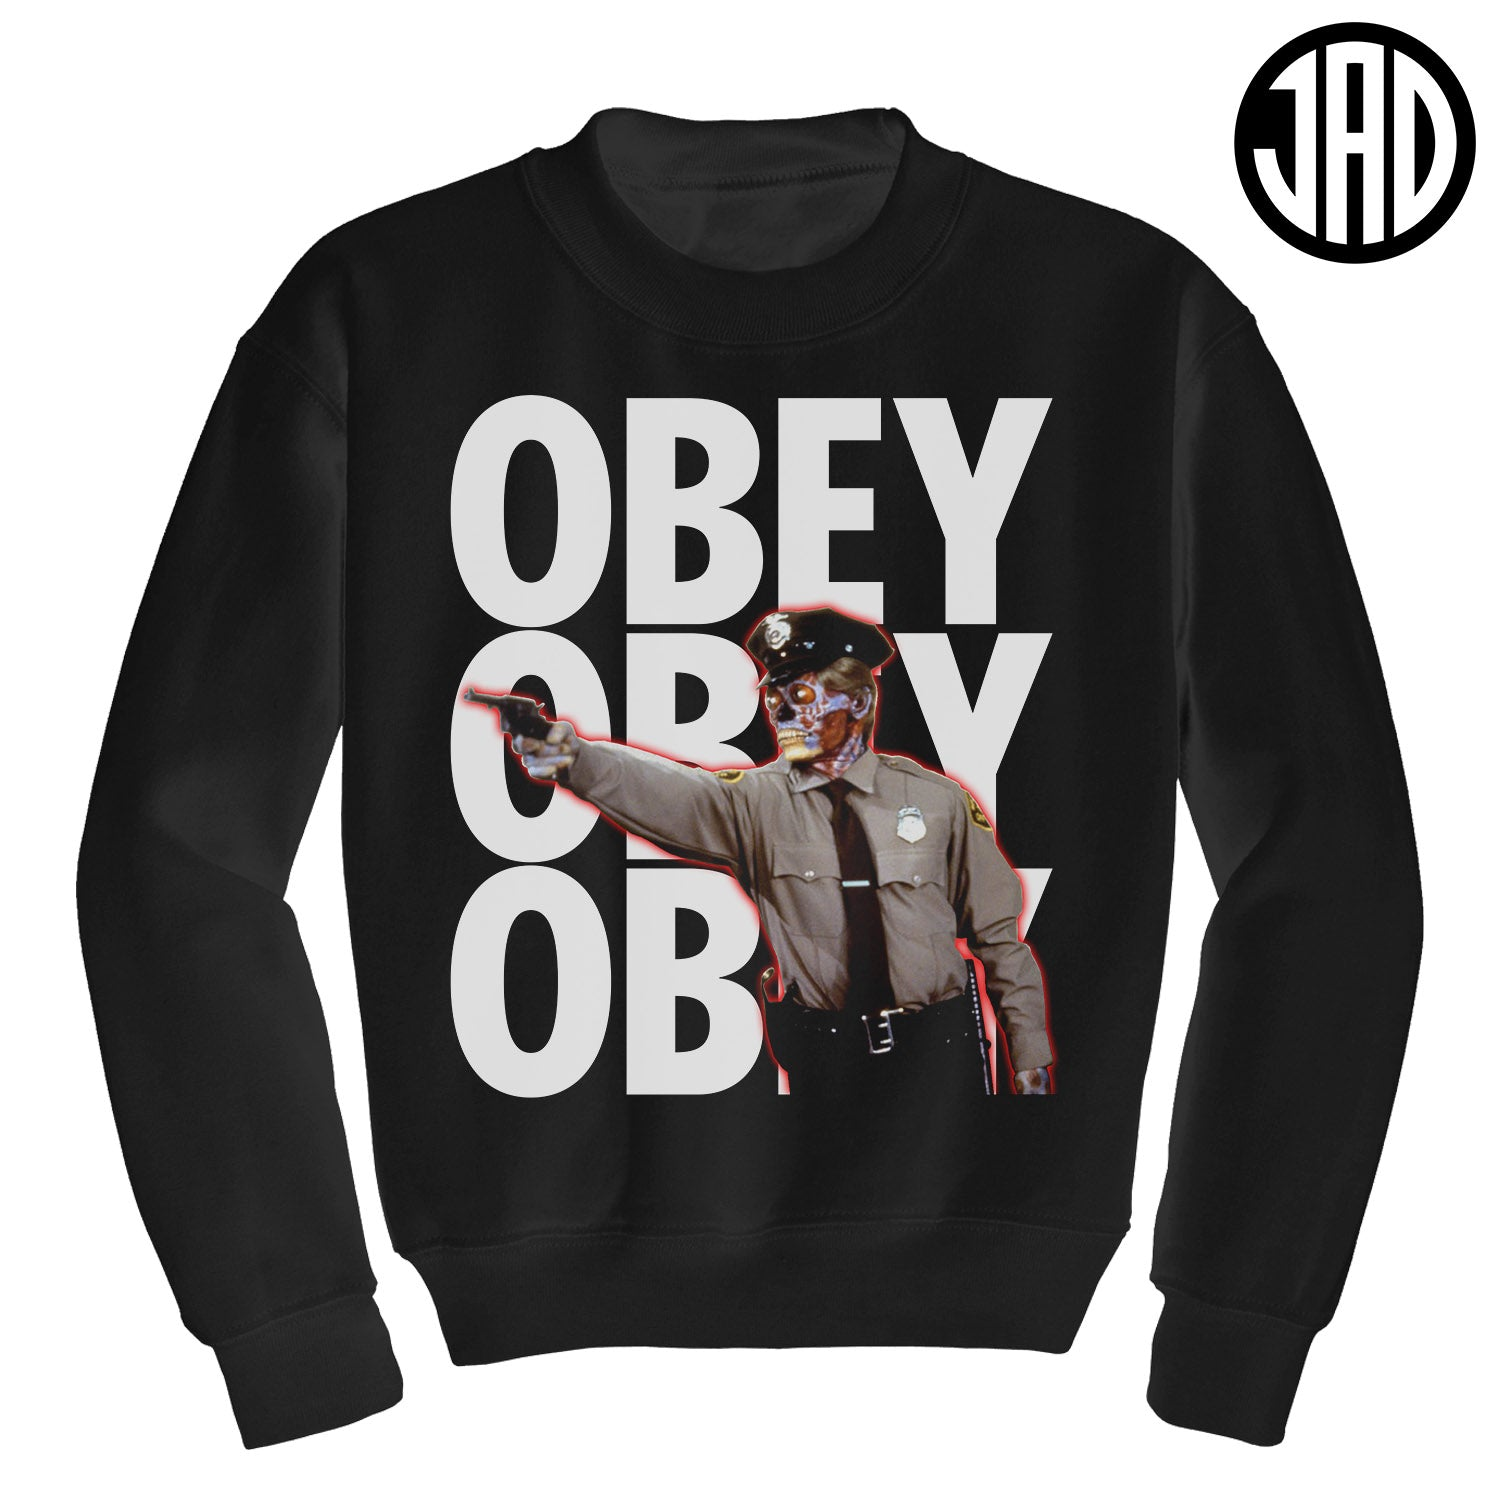 Do Not Question Authority - Crewneck Sweater